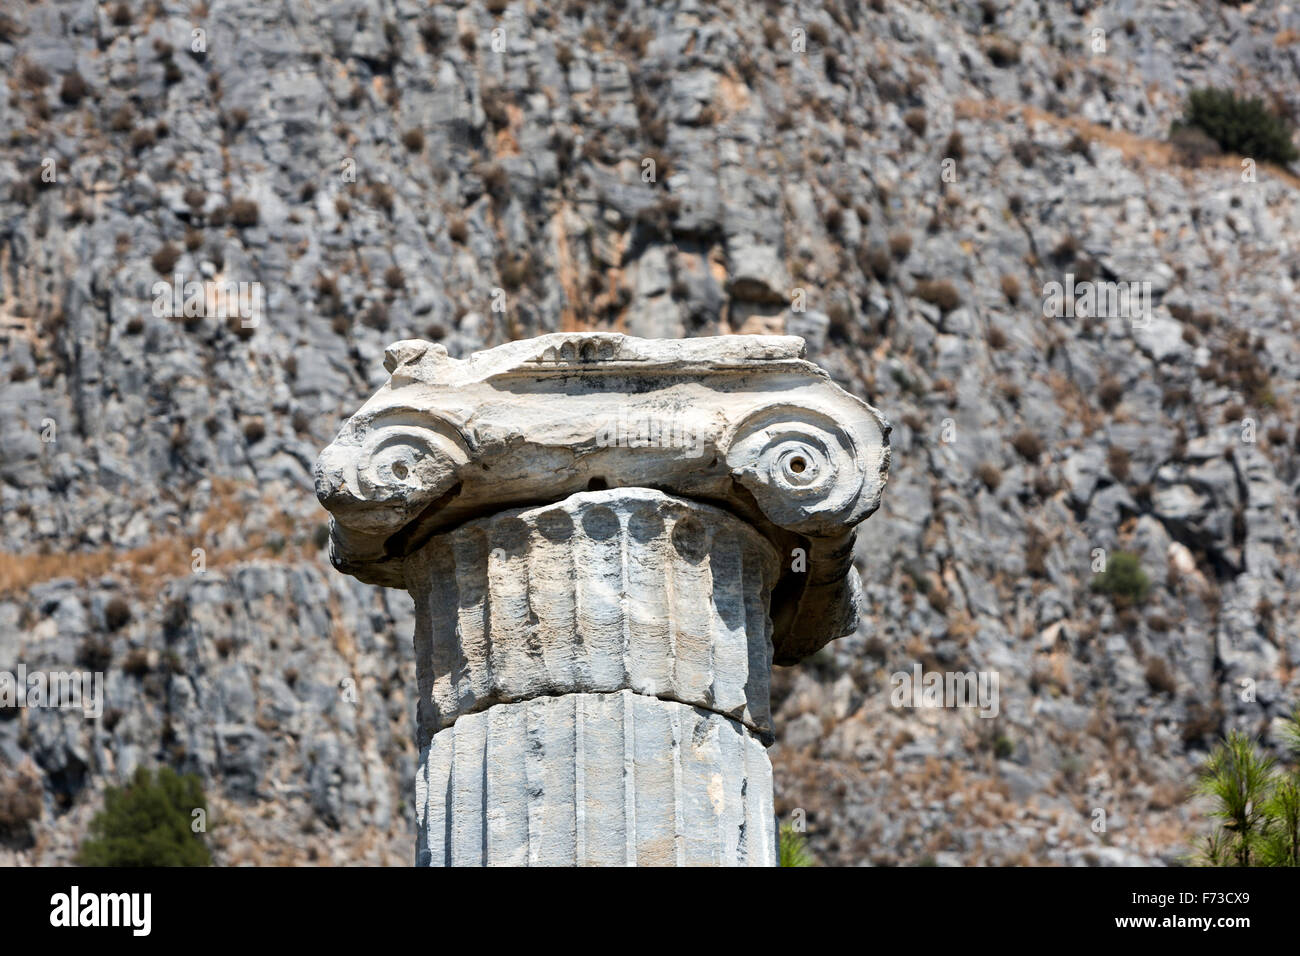 Ionic column of the Temple of Athena. Priene an ancient Greek city of Ionia at the base of an escarpment of Mycale. - Stock Image